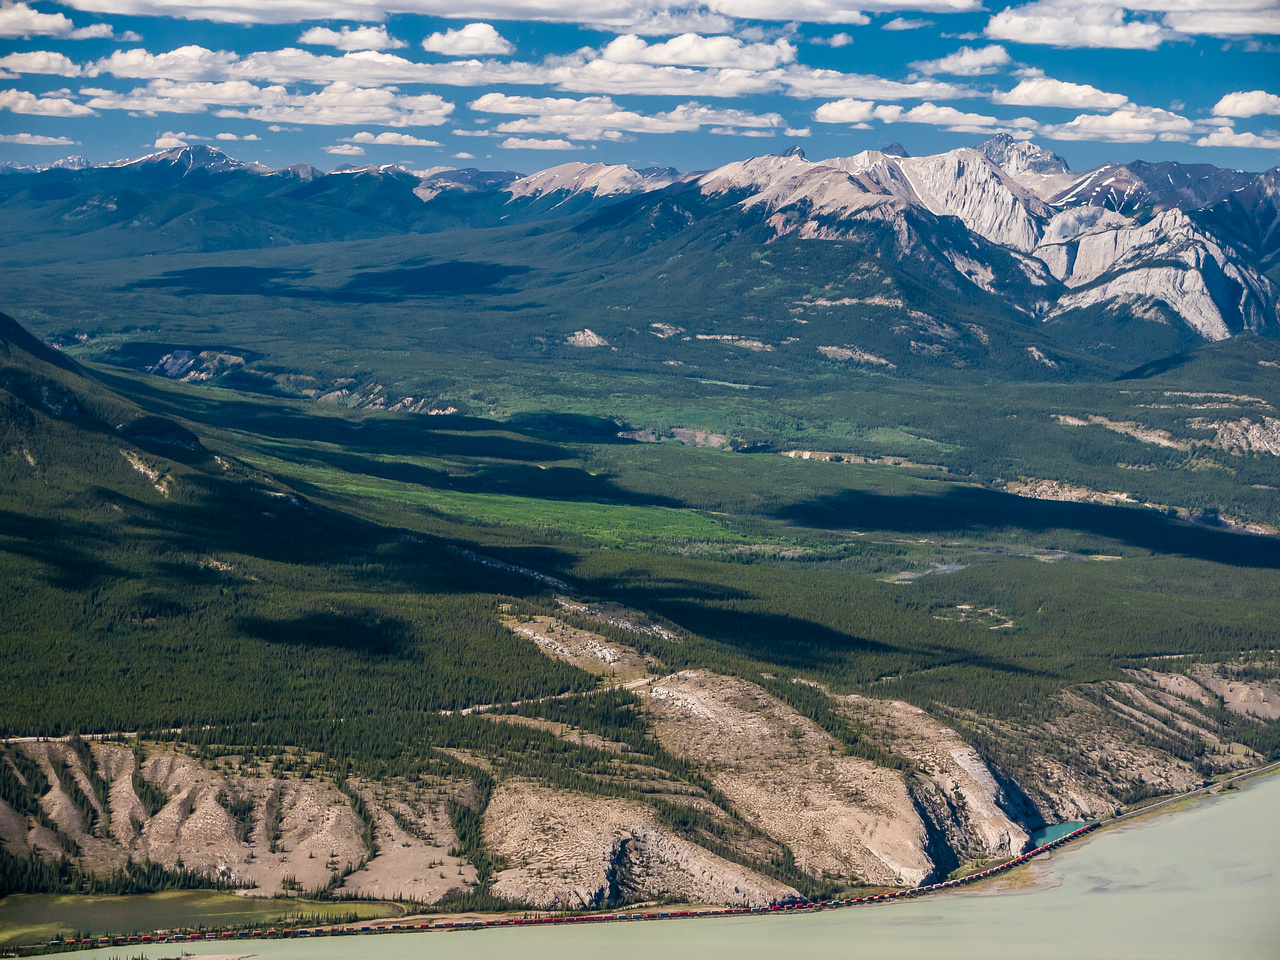 Views towards Roche Ronde and Coronach Mountain over the Beaver Bluffs and Snake Indian River.